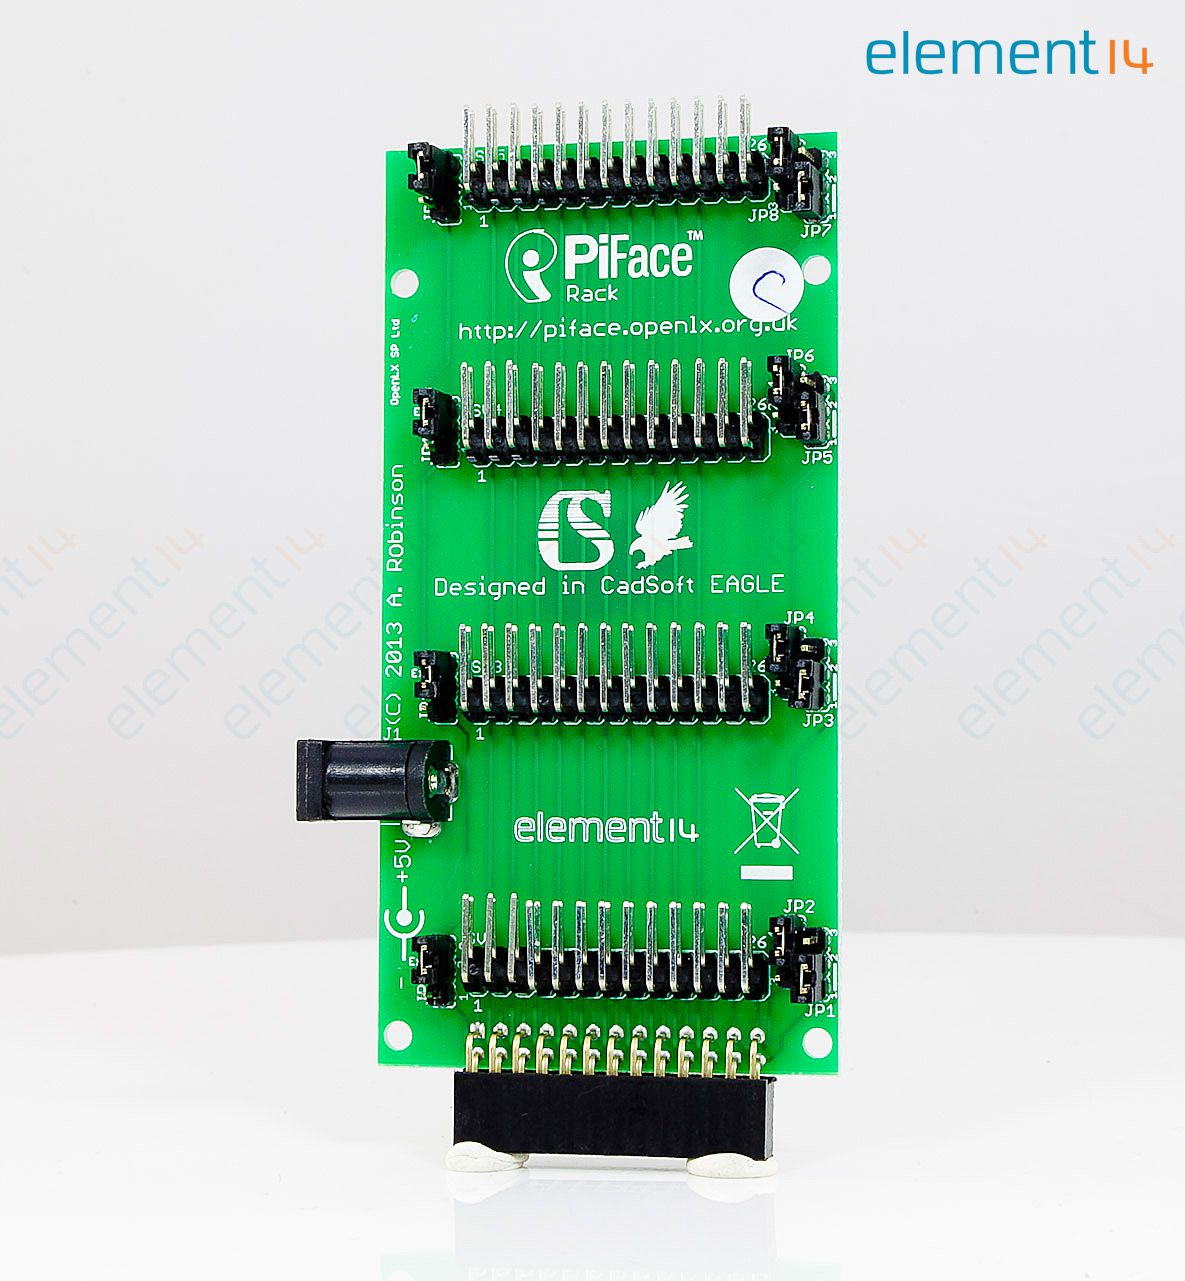 Pirack Piface Accessory Board Circuit Rack For Raspberry Pi Electronic Boardcircuit Power Supply Image Is Illustrative Purposes Only Please Refer To Product Description